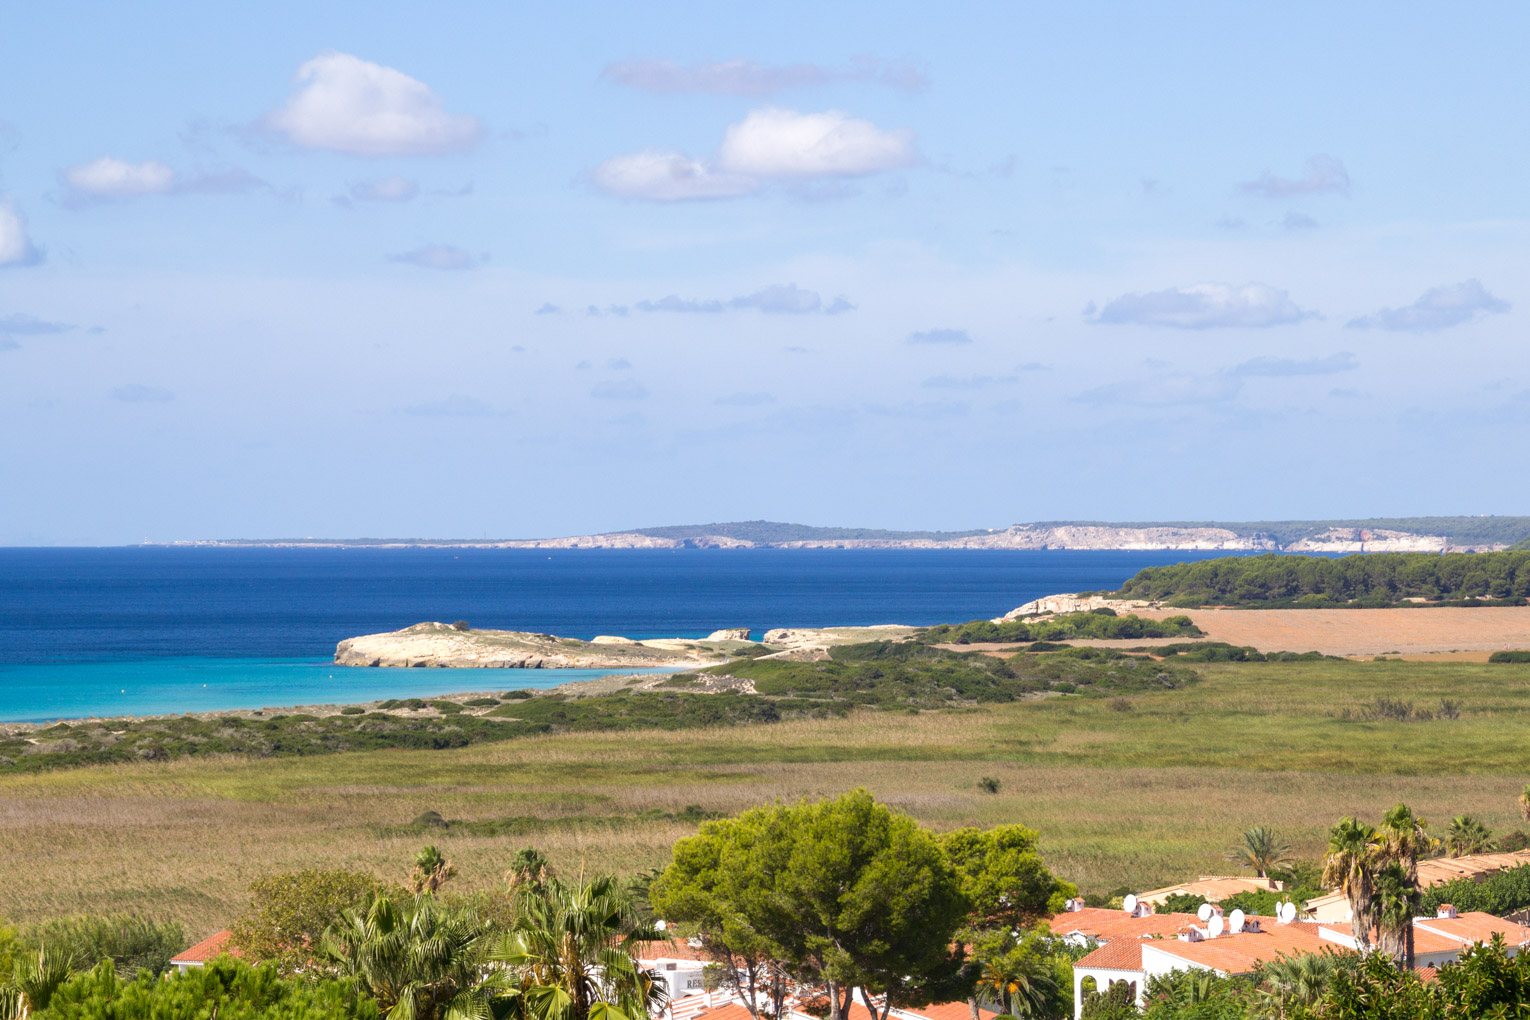 Sunset Suites Son Bou in Son Bou, Menorca